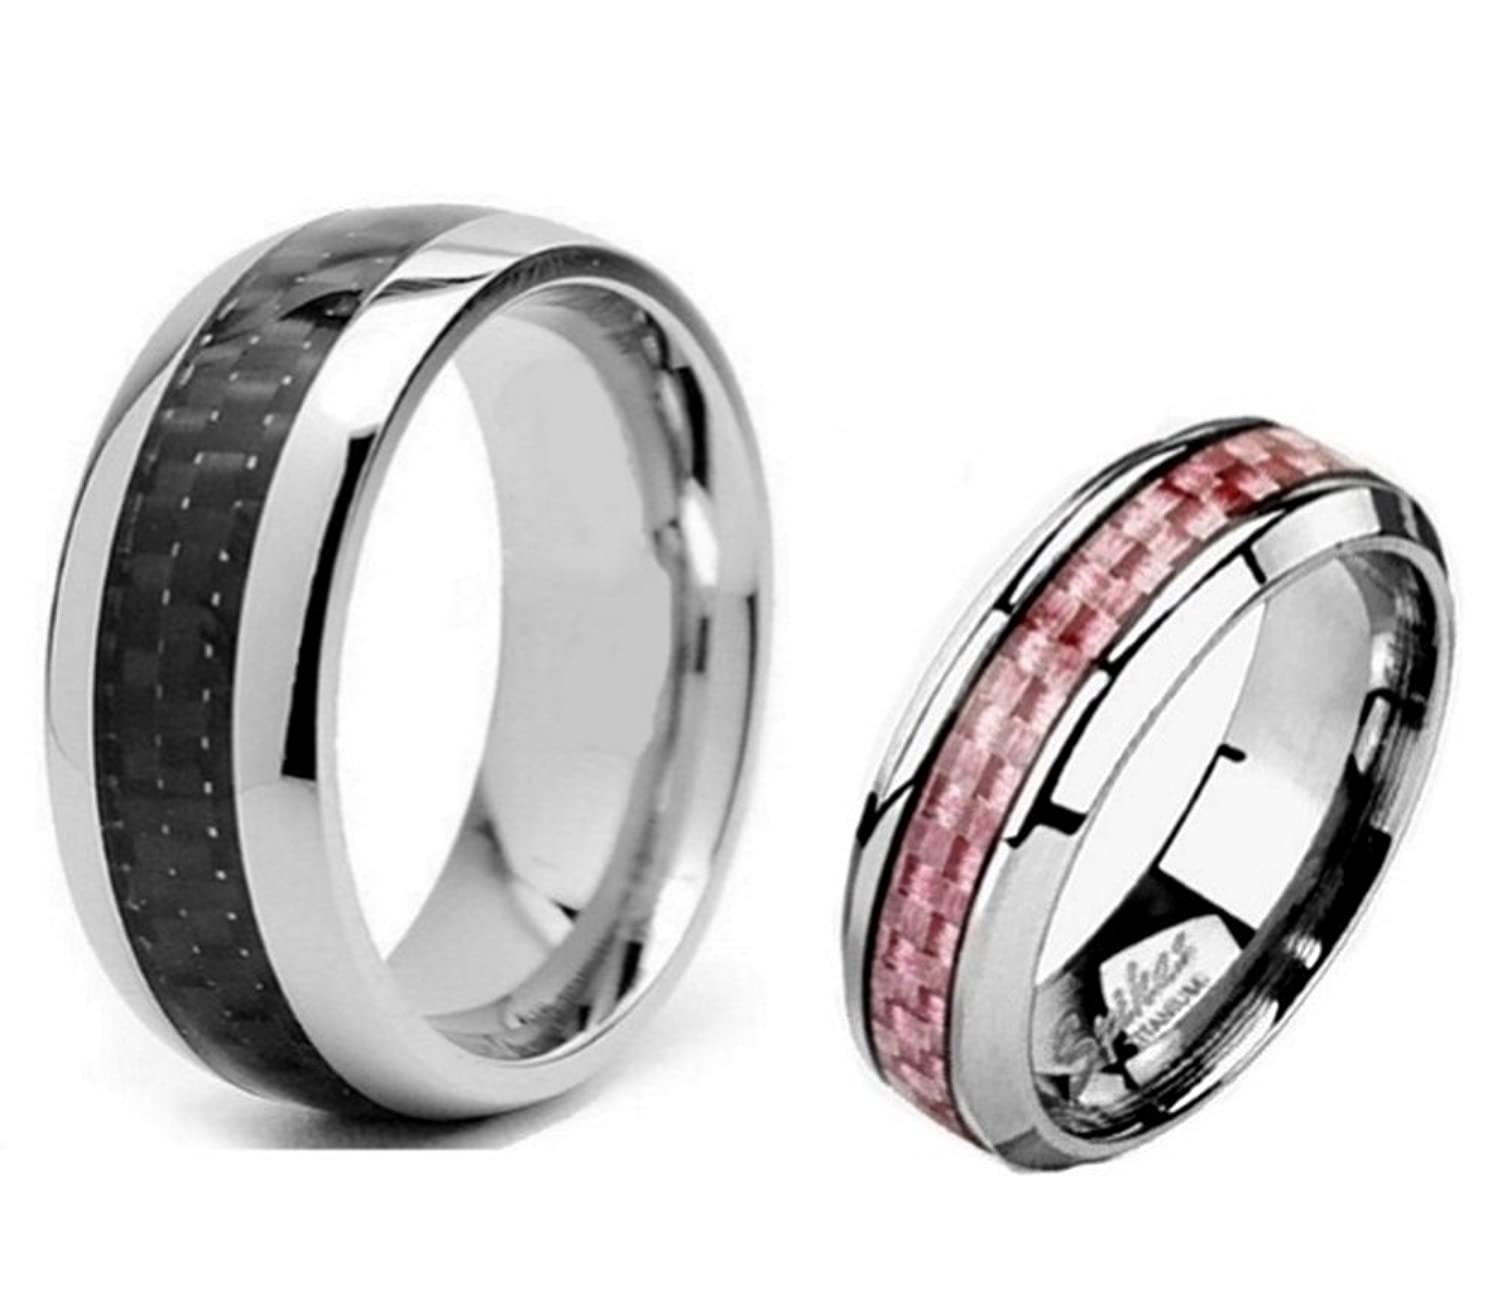 titanium fibre jones ernest fresh fiber ricksalerealty detail com rings ring carbon of wedding best